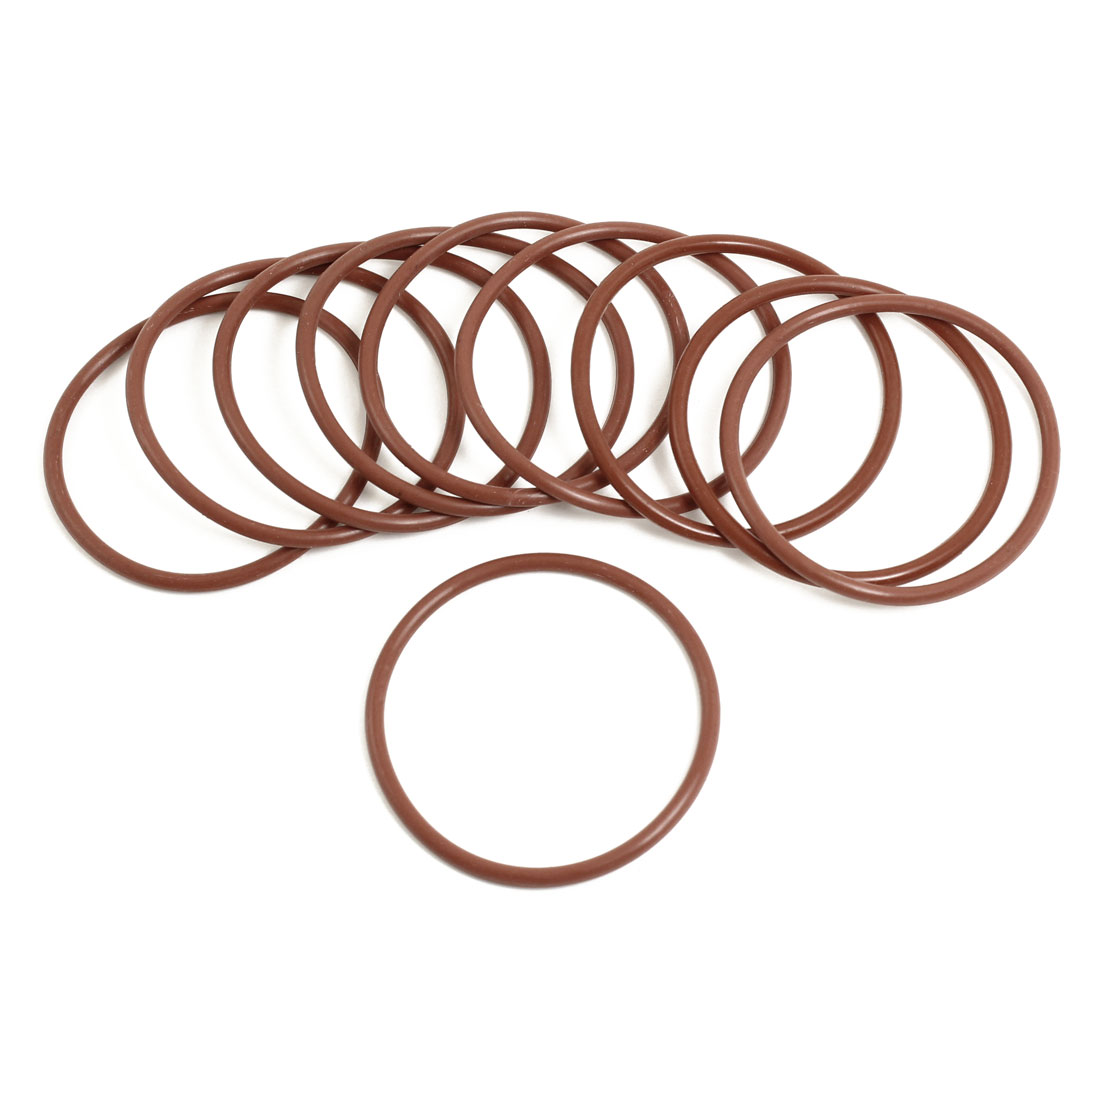 Unique Bargains 10 Pieces Soft Rubber O Rings Seal Washers Replacement Red 55mm x 3mm